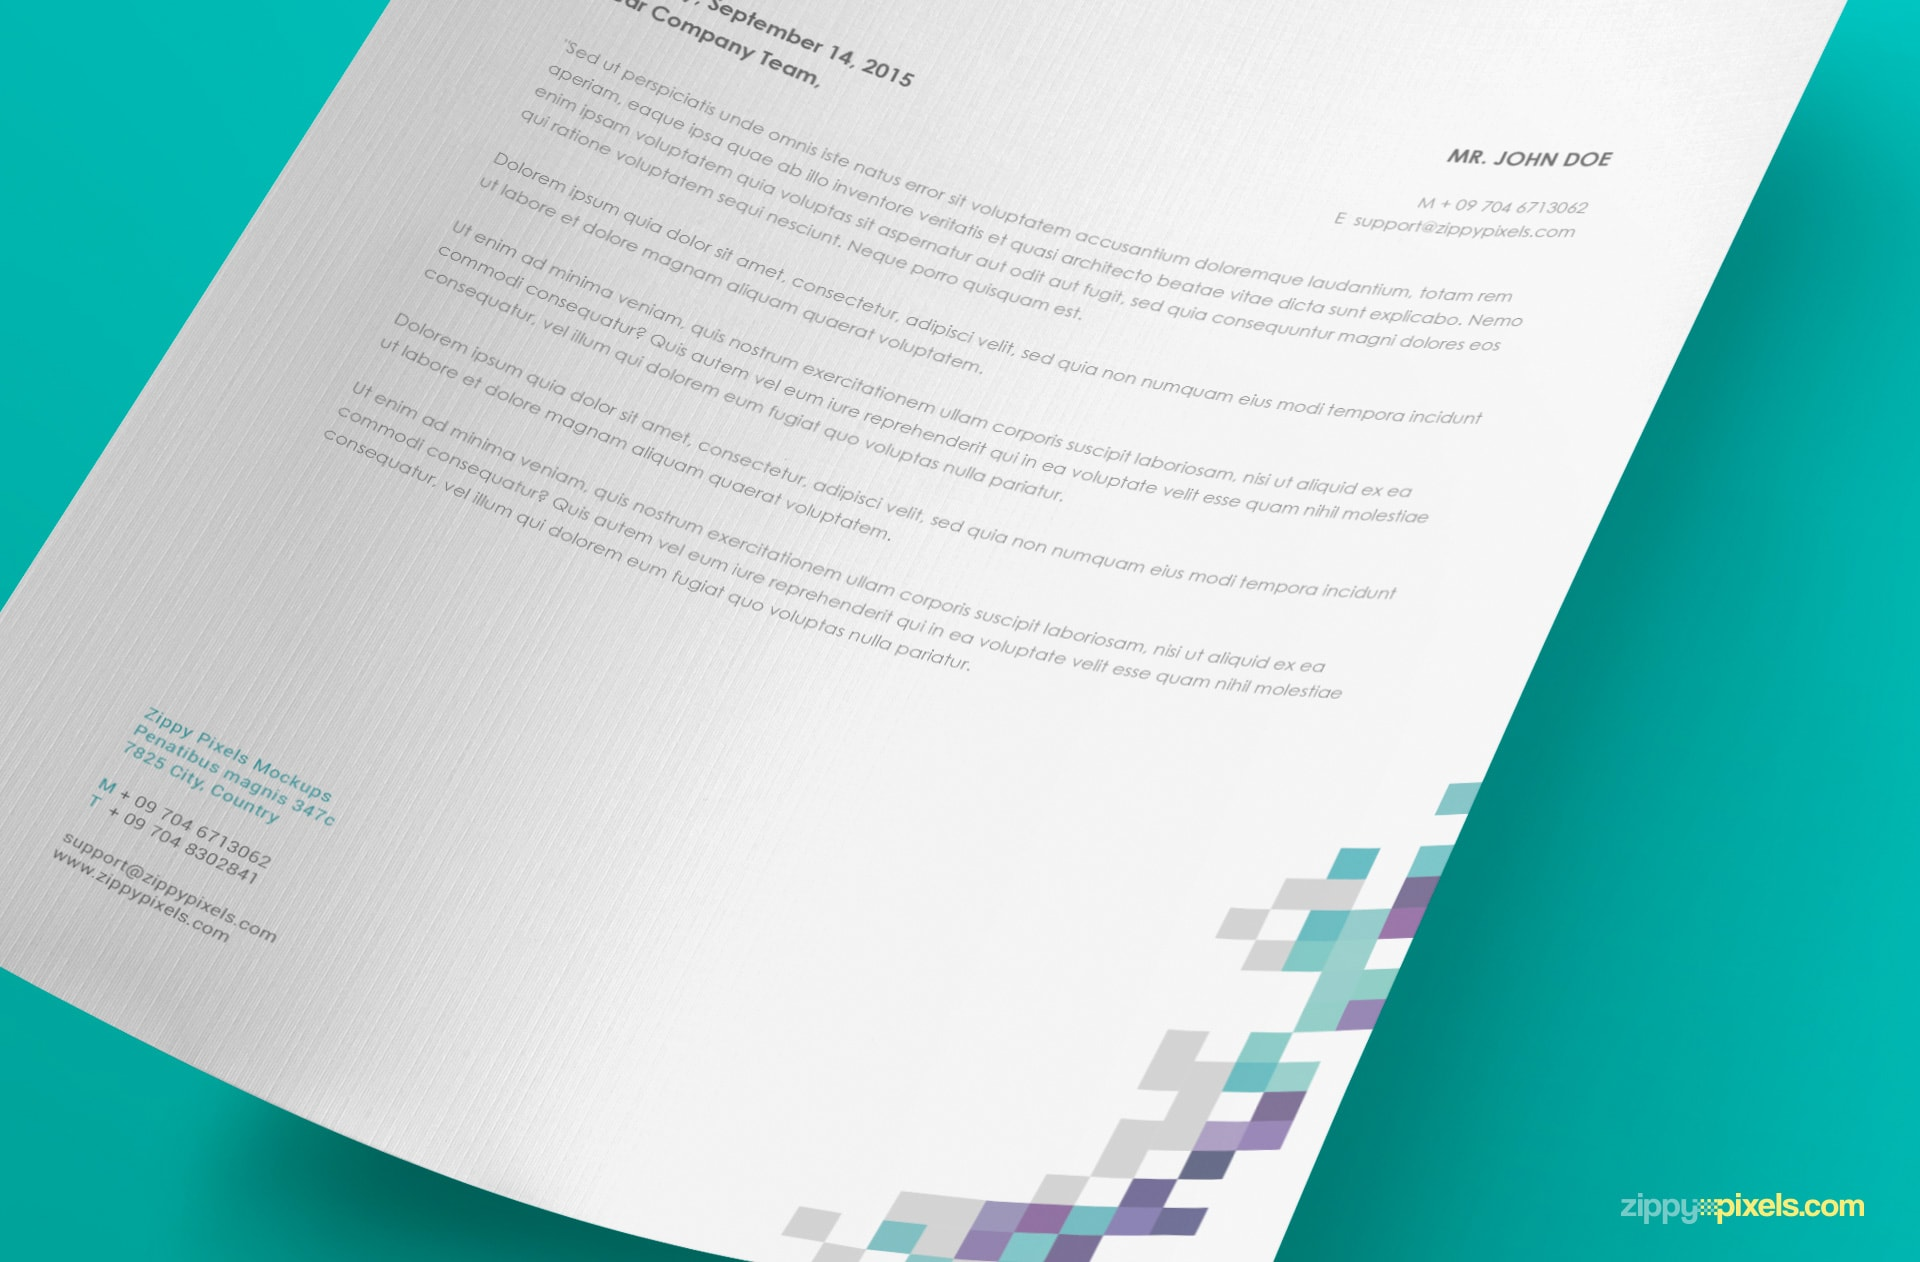 present your stationery, letterhead, logos, sketches and other print designs